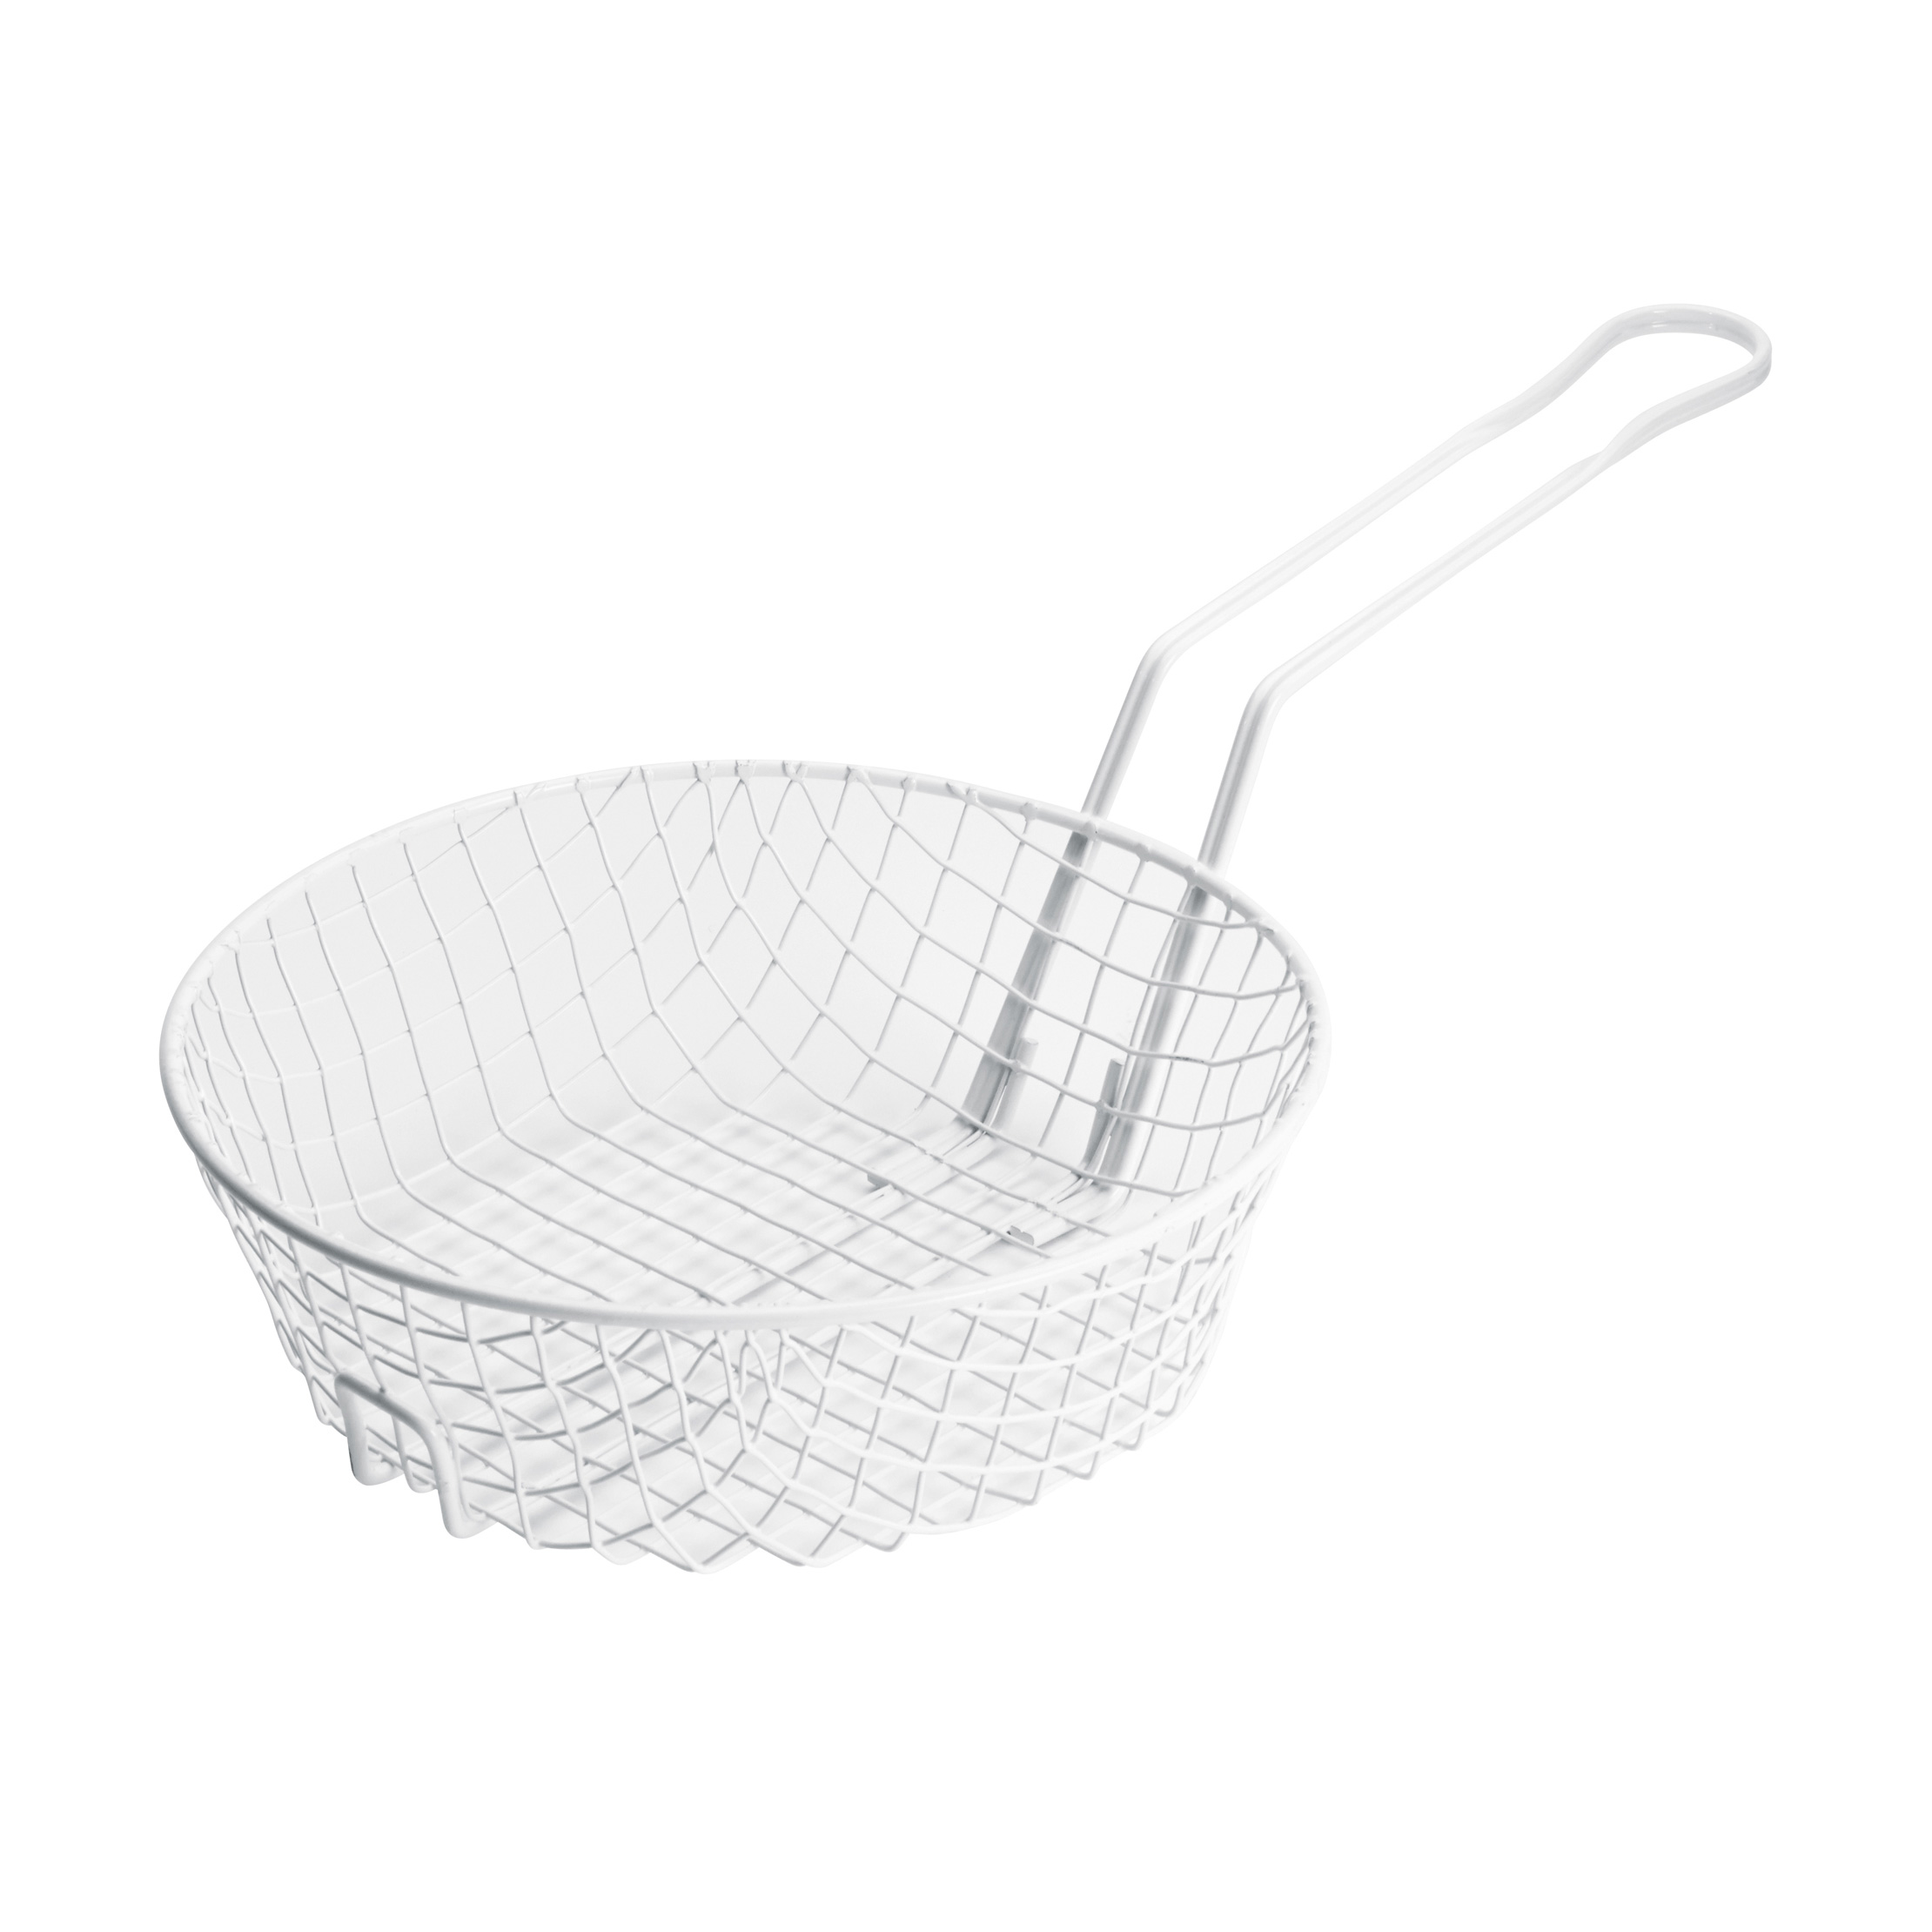 Winco MSBW-10 fryer basket